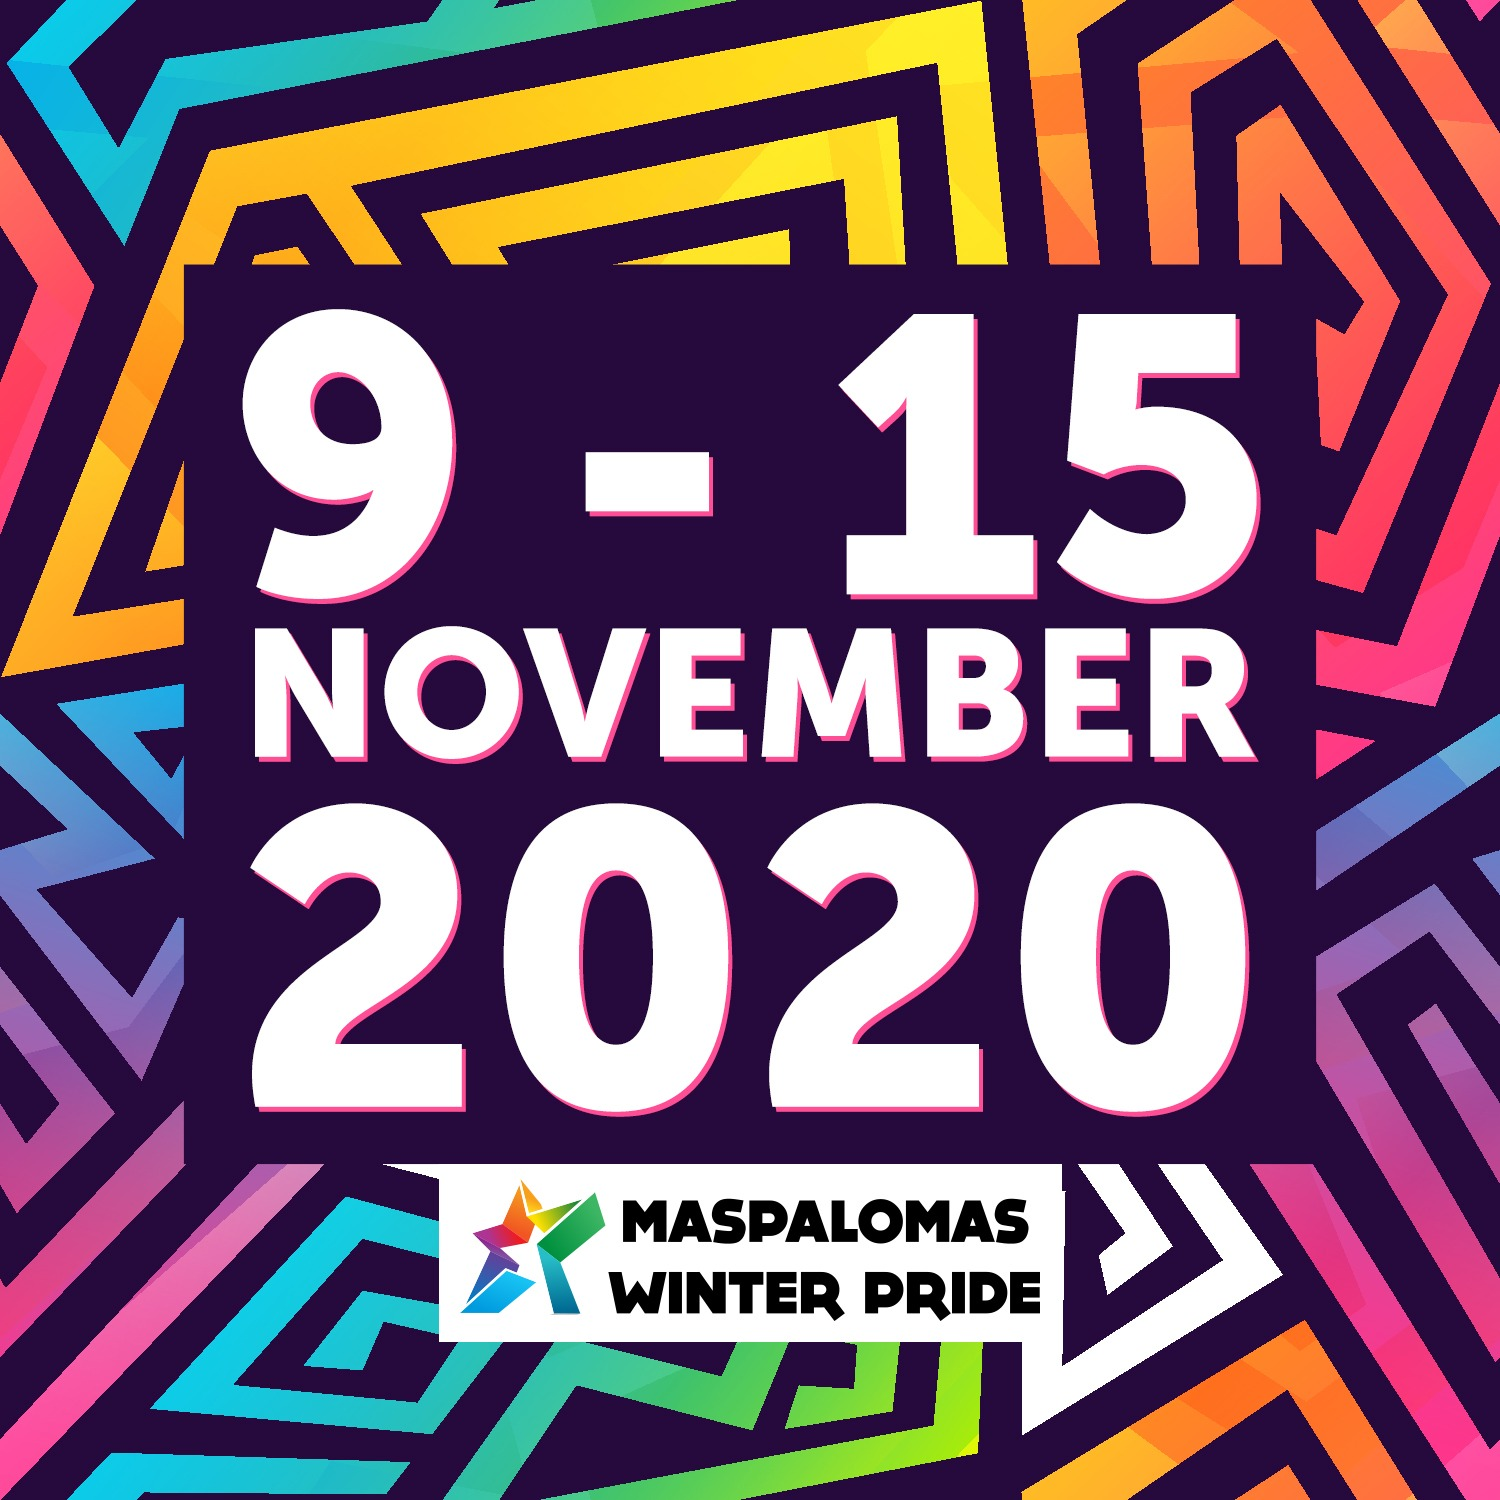 Maspalomas winter pride 2020